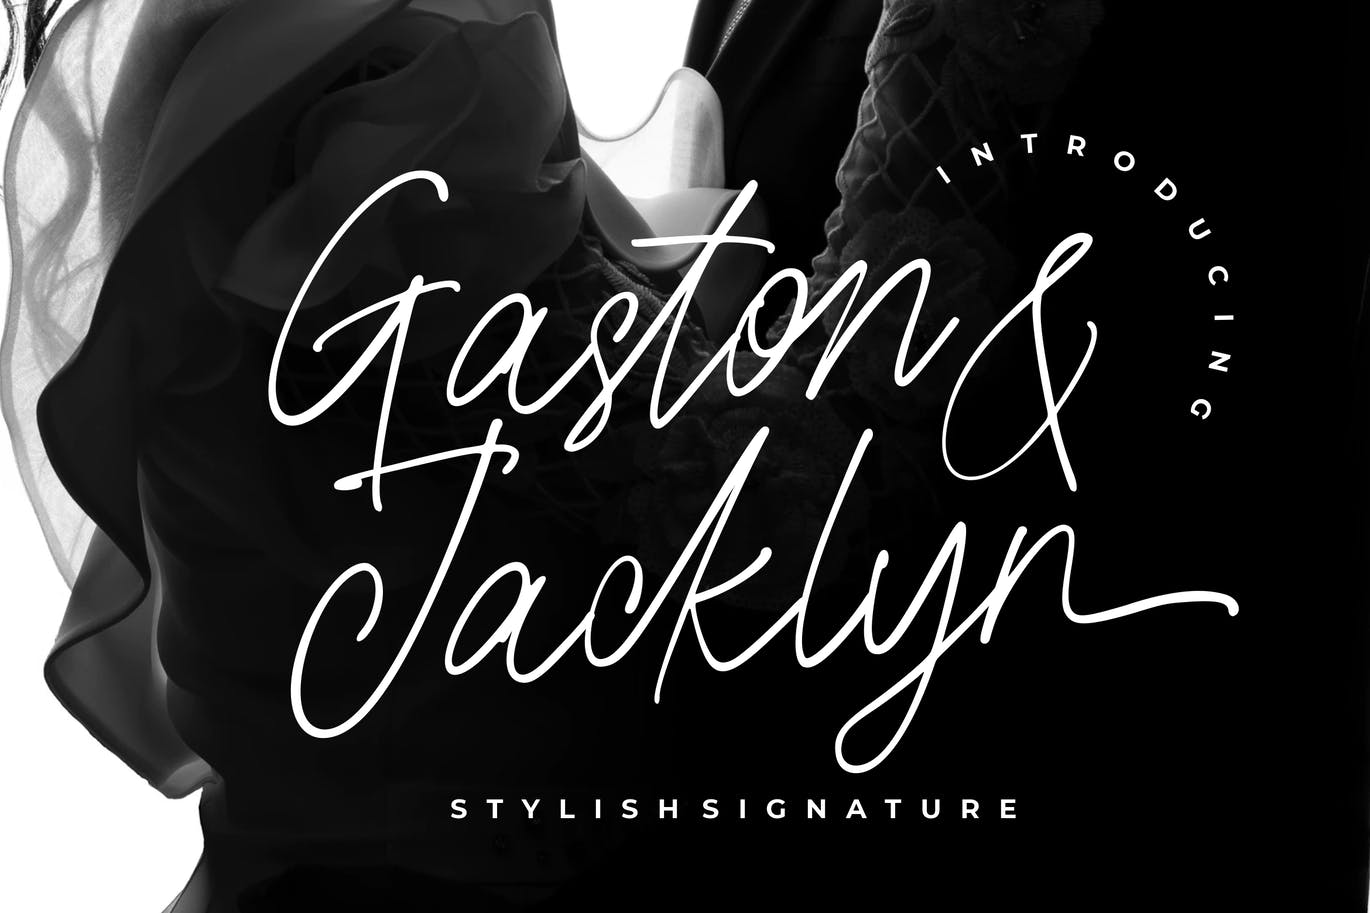 Gaston & Jacklyn Stylish Signature Font -1